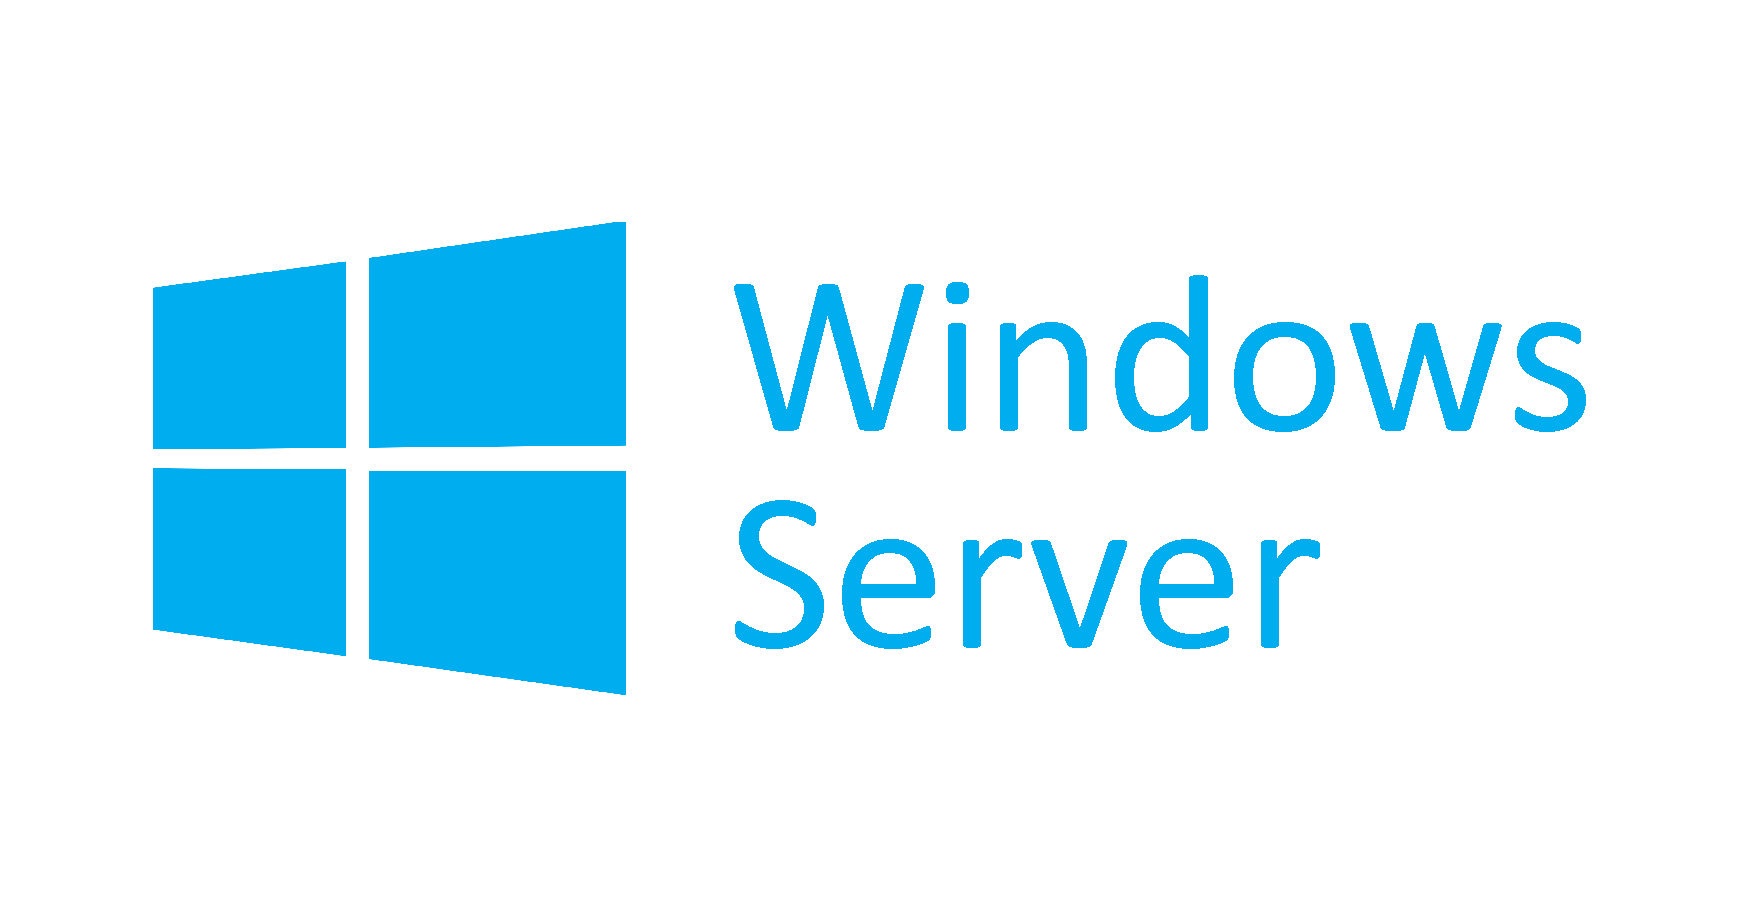 Windows server snmp service tabs missing evotec for Windows logo png